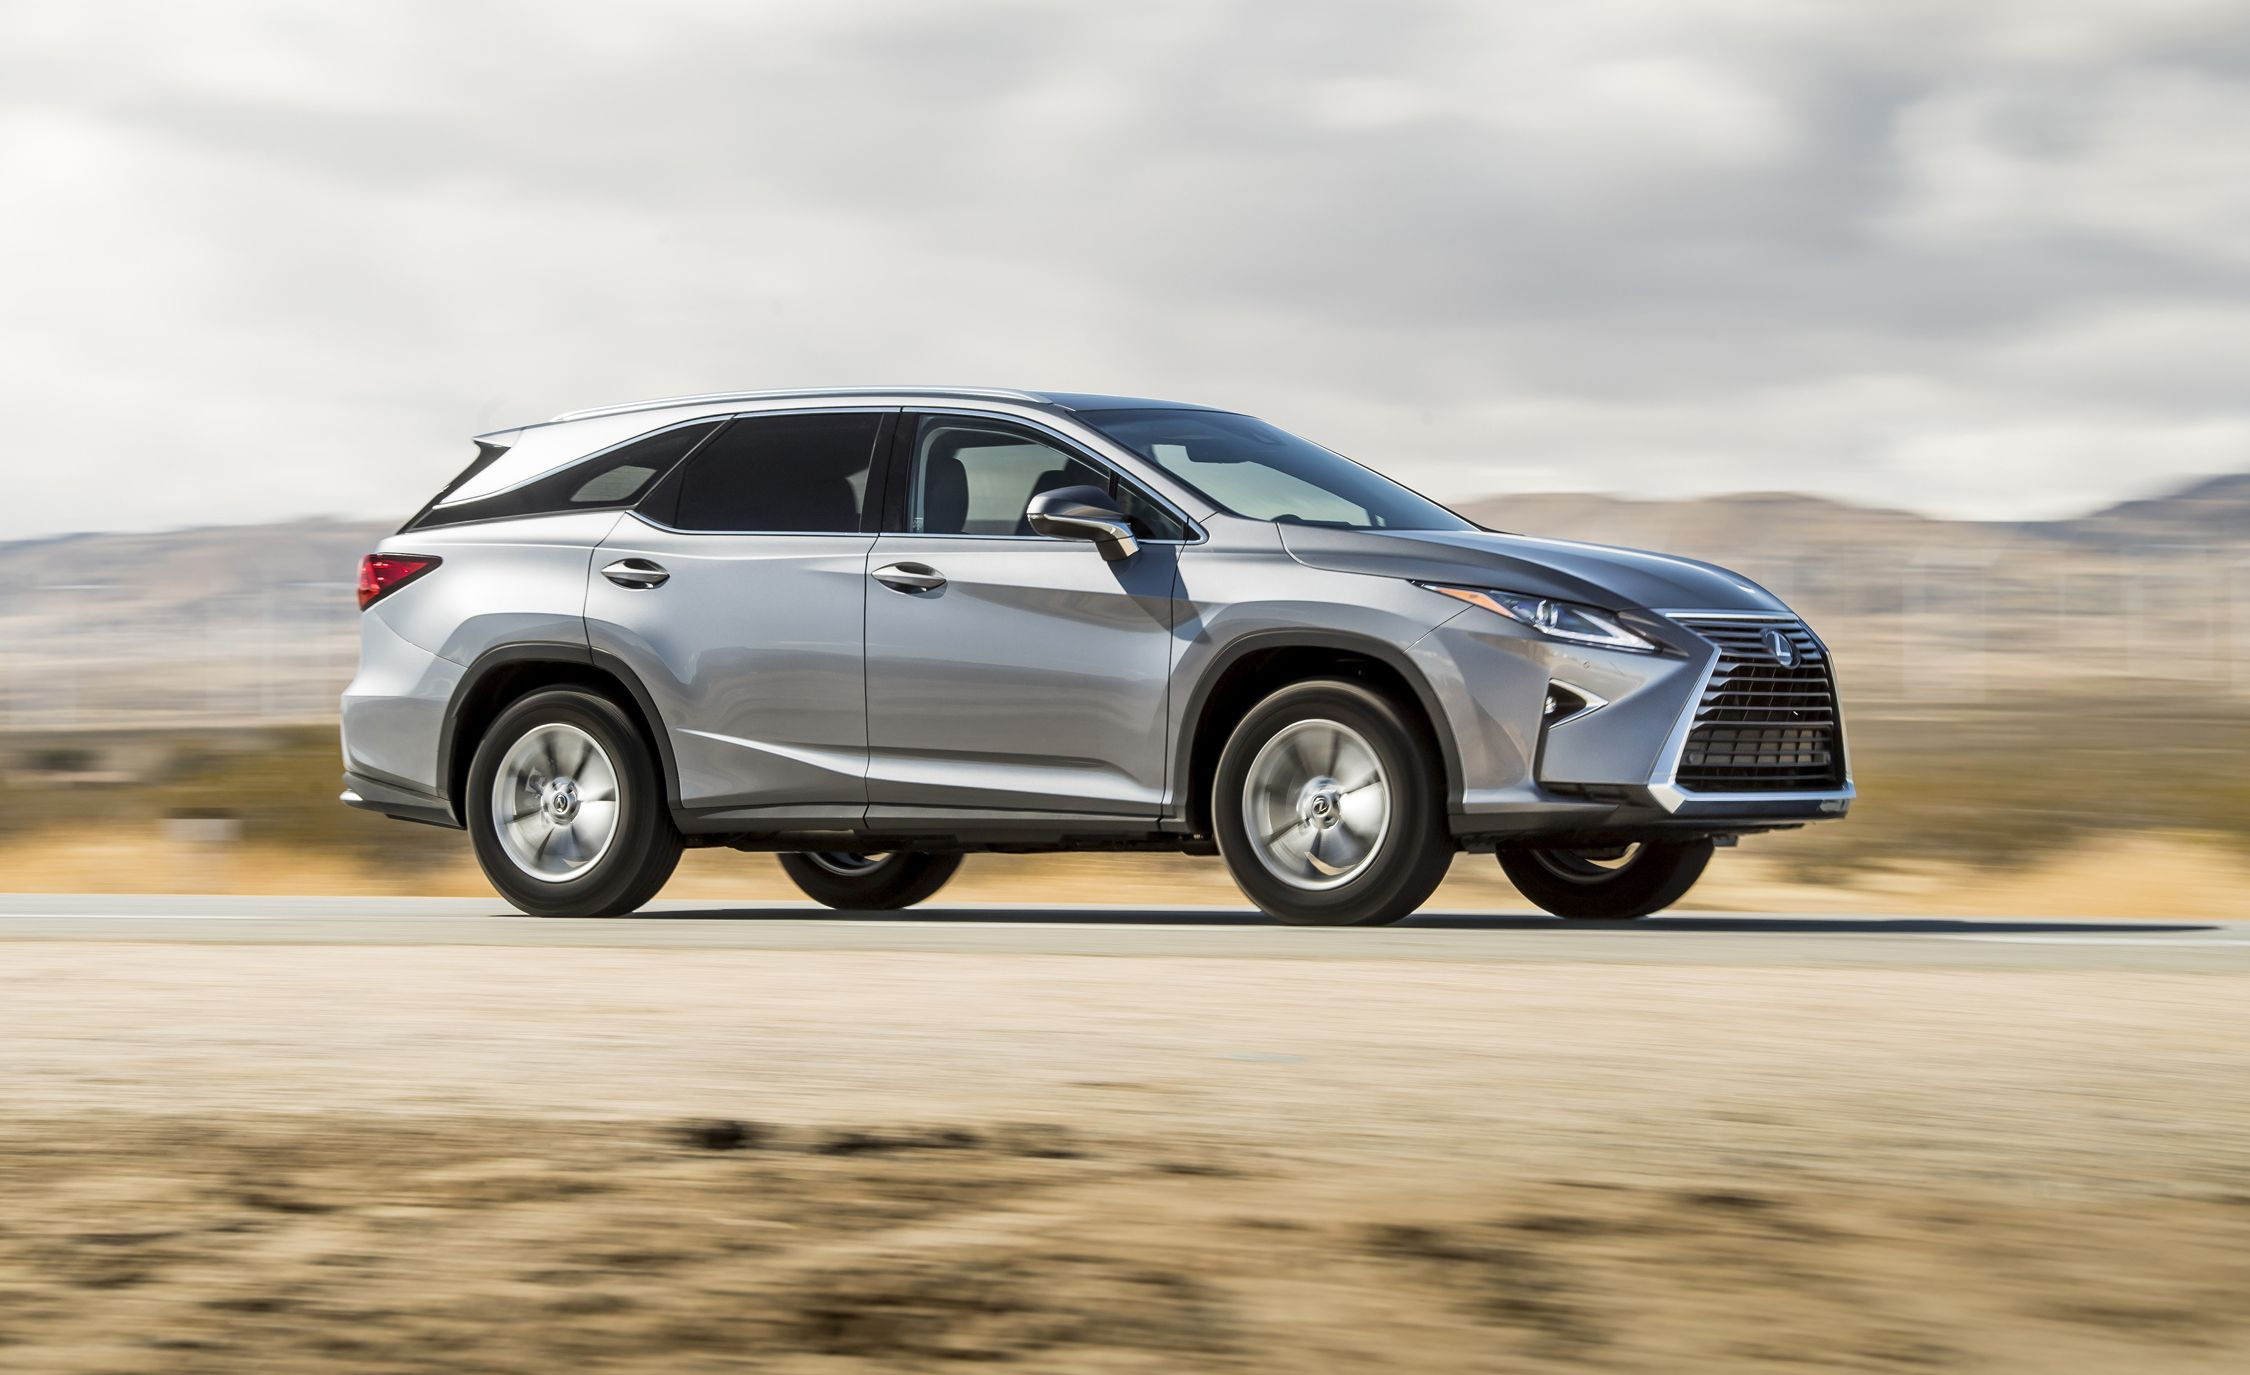 2018 lexus rx350l fwd test review car and driver photo 703697 s original